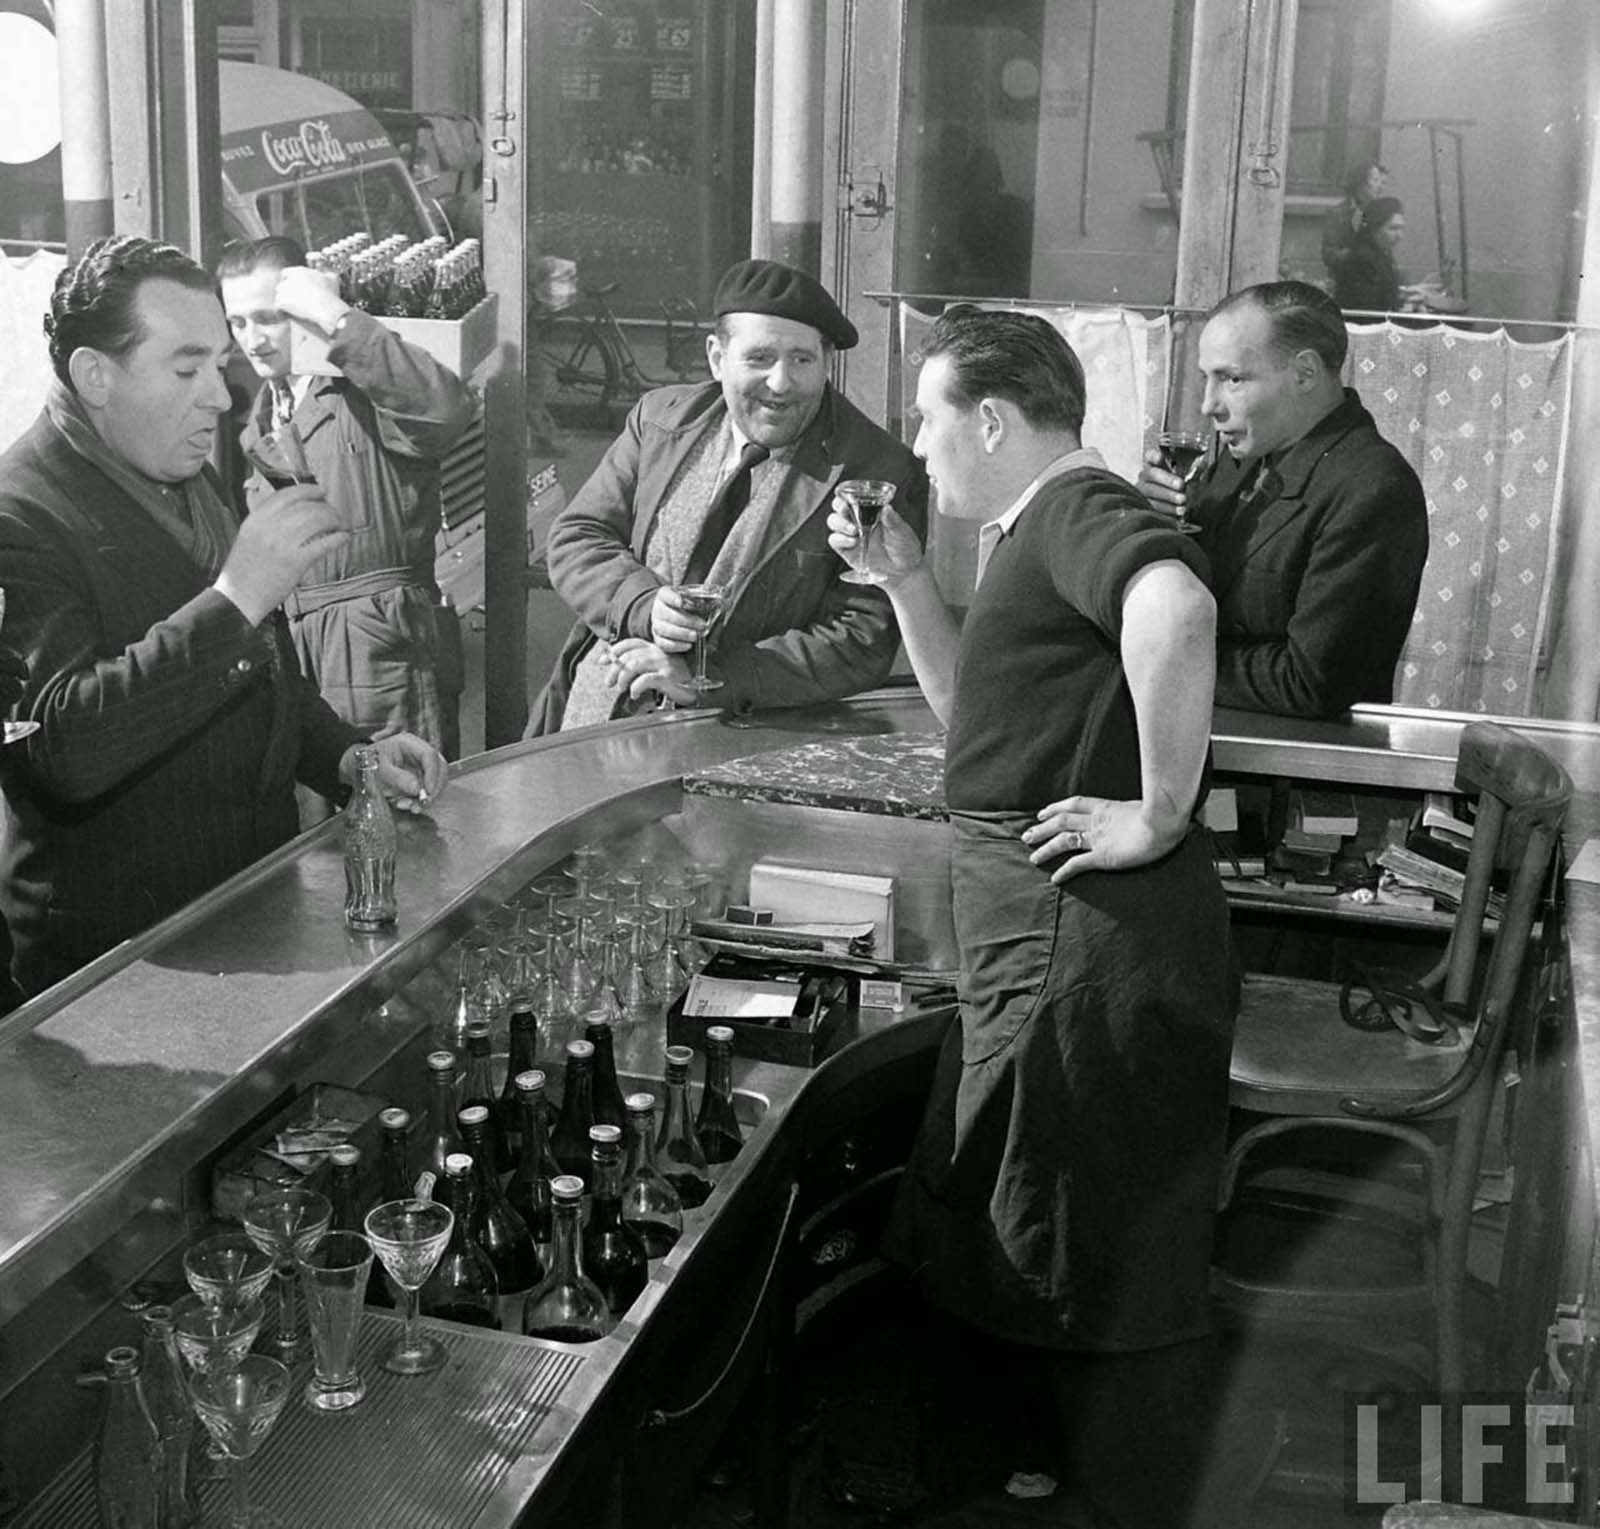 A group of people trying the Coca Cola.